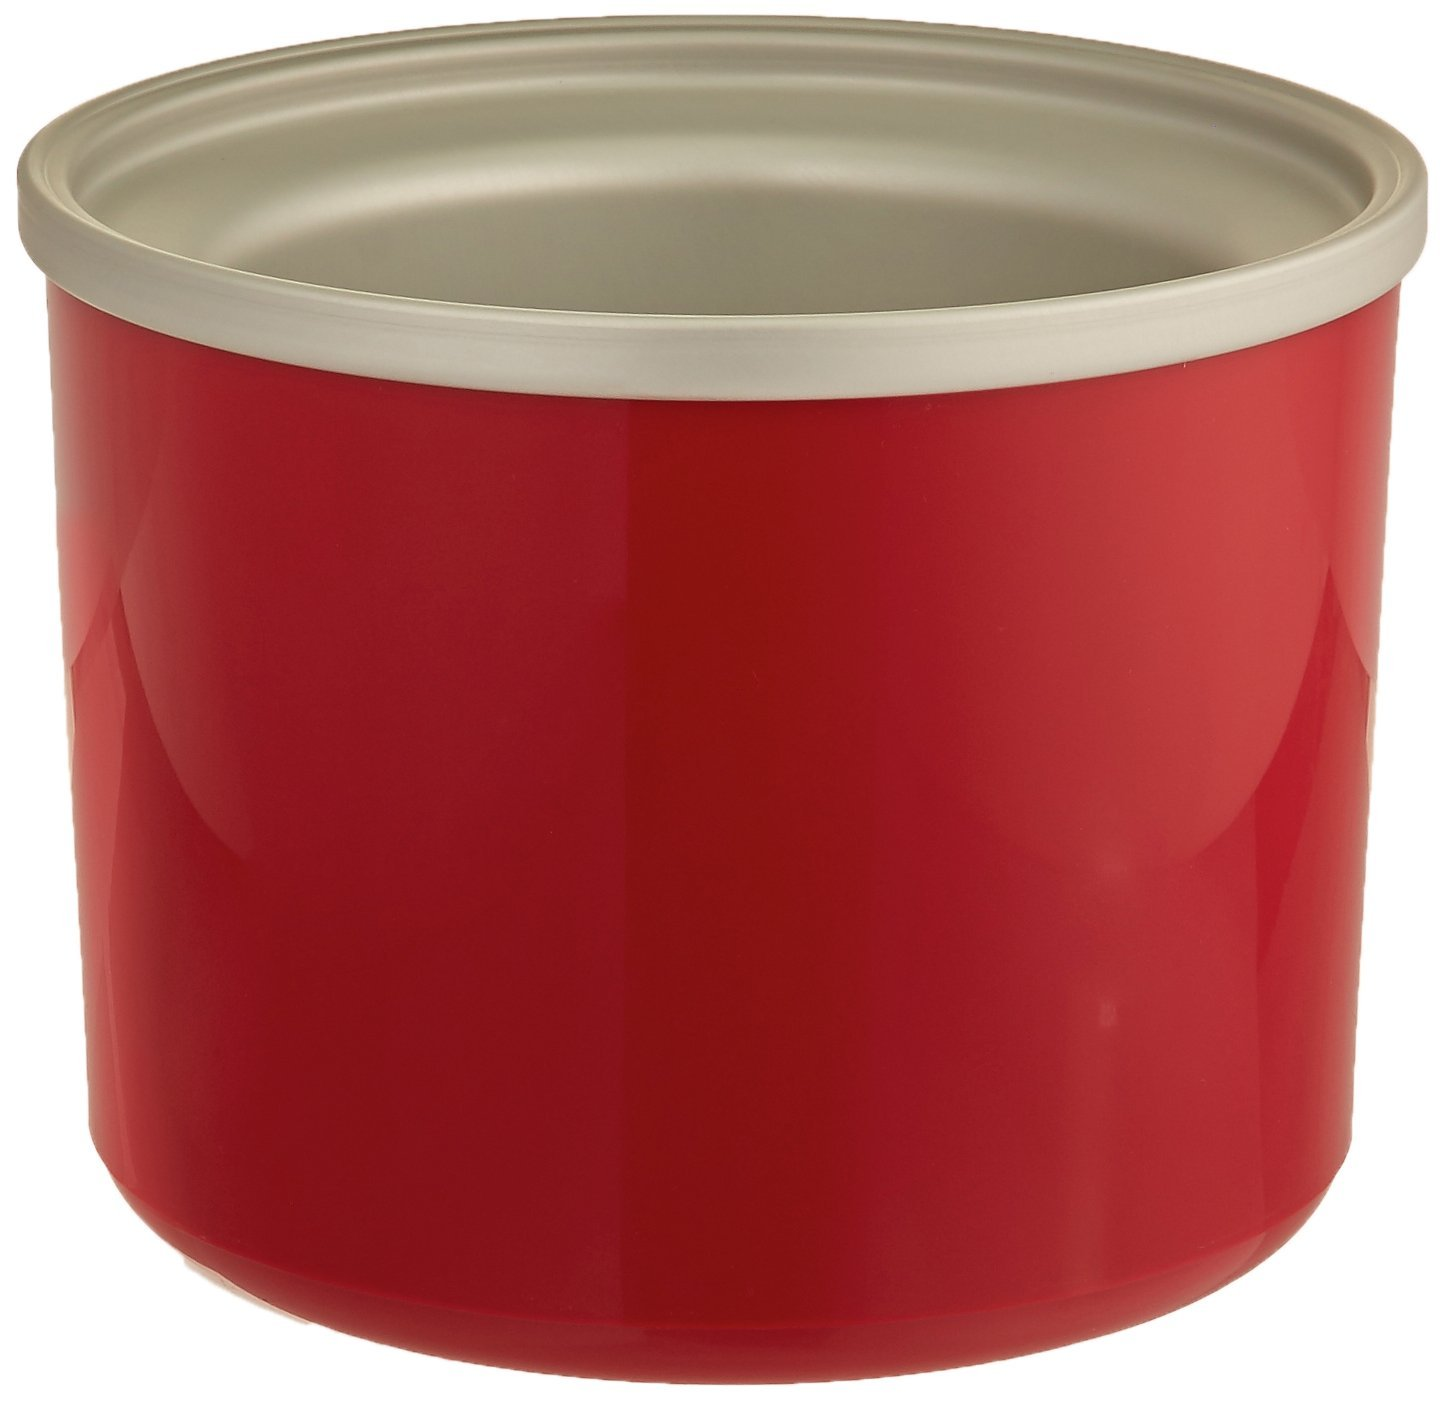 Cuisinart ICE-RFBR Replacement Freezer Bowl, 1-1/2-Quart Capacity, Red